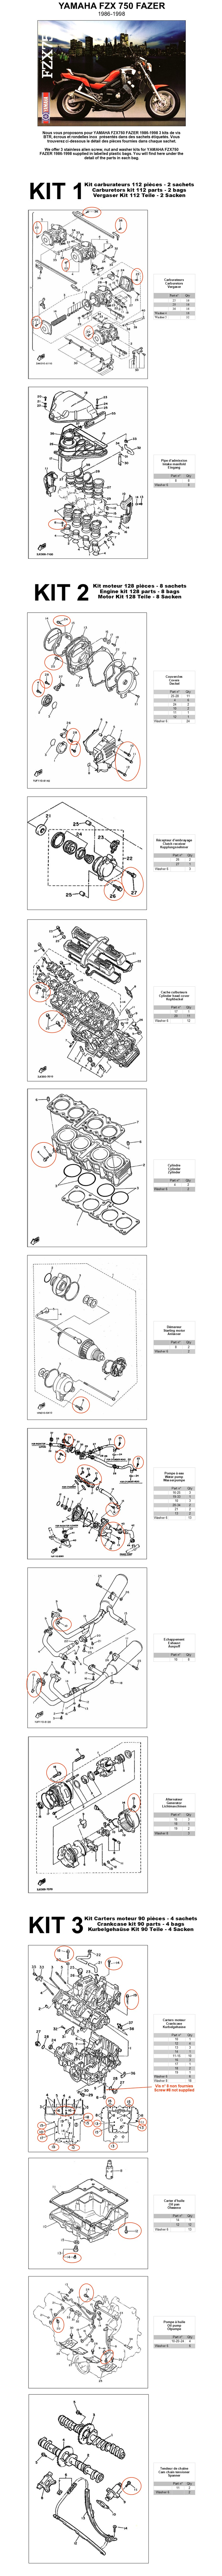 Yamaha Fzx 750 Fazer 1987 1998 Engine Stainless Allen Screw Kit 2 Fzx700 Wiring Diagram Each Is Supplied With An Internet Address Of The Mounting Drawing For